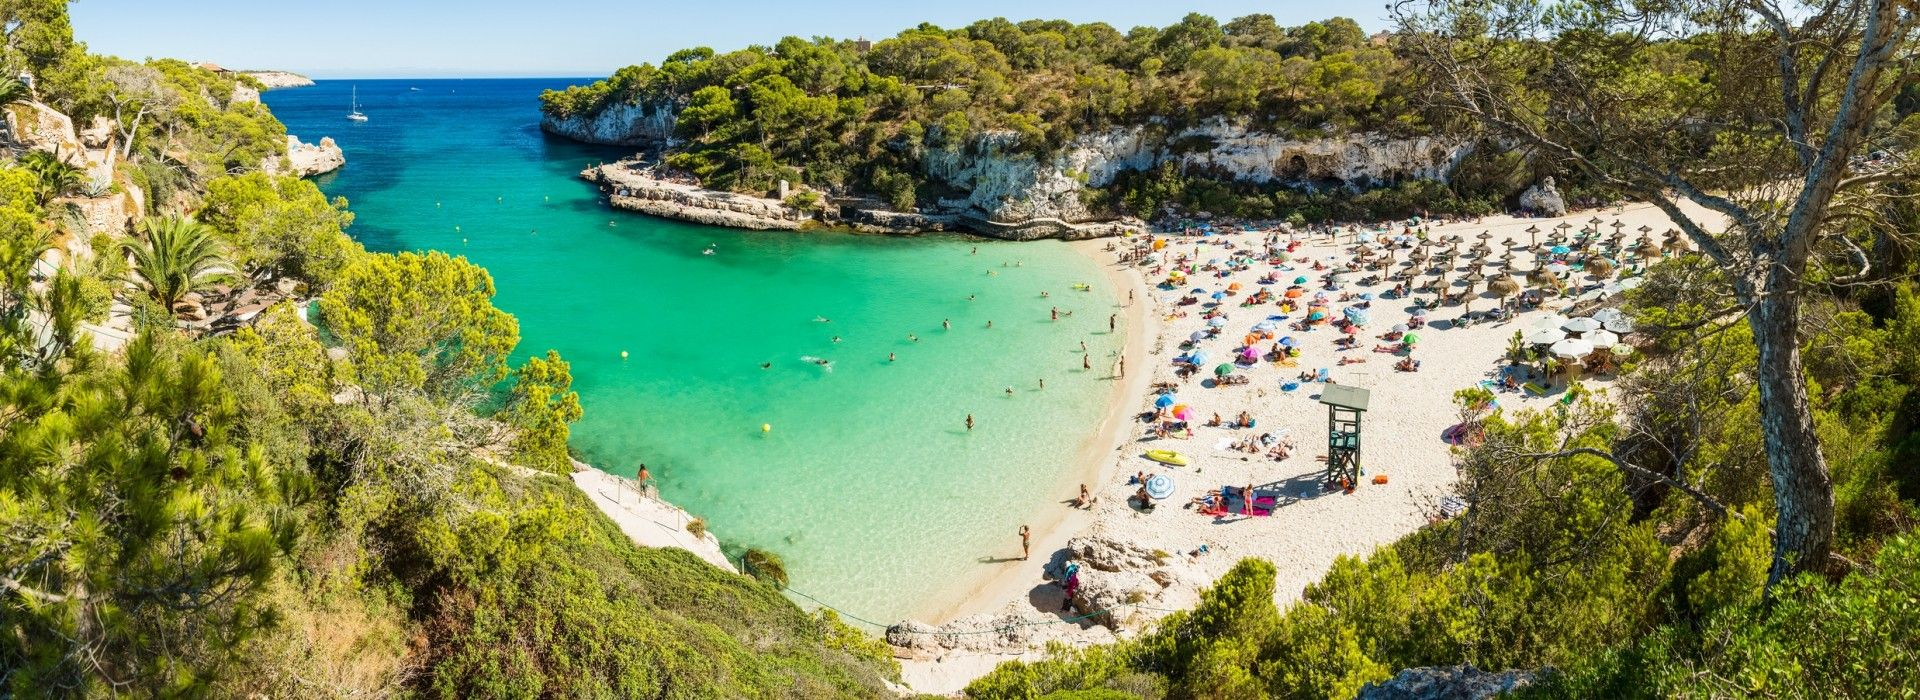 Balearic Islands Tours and Holidays 2018/2019